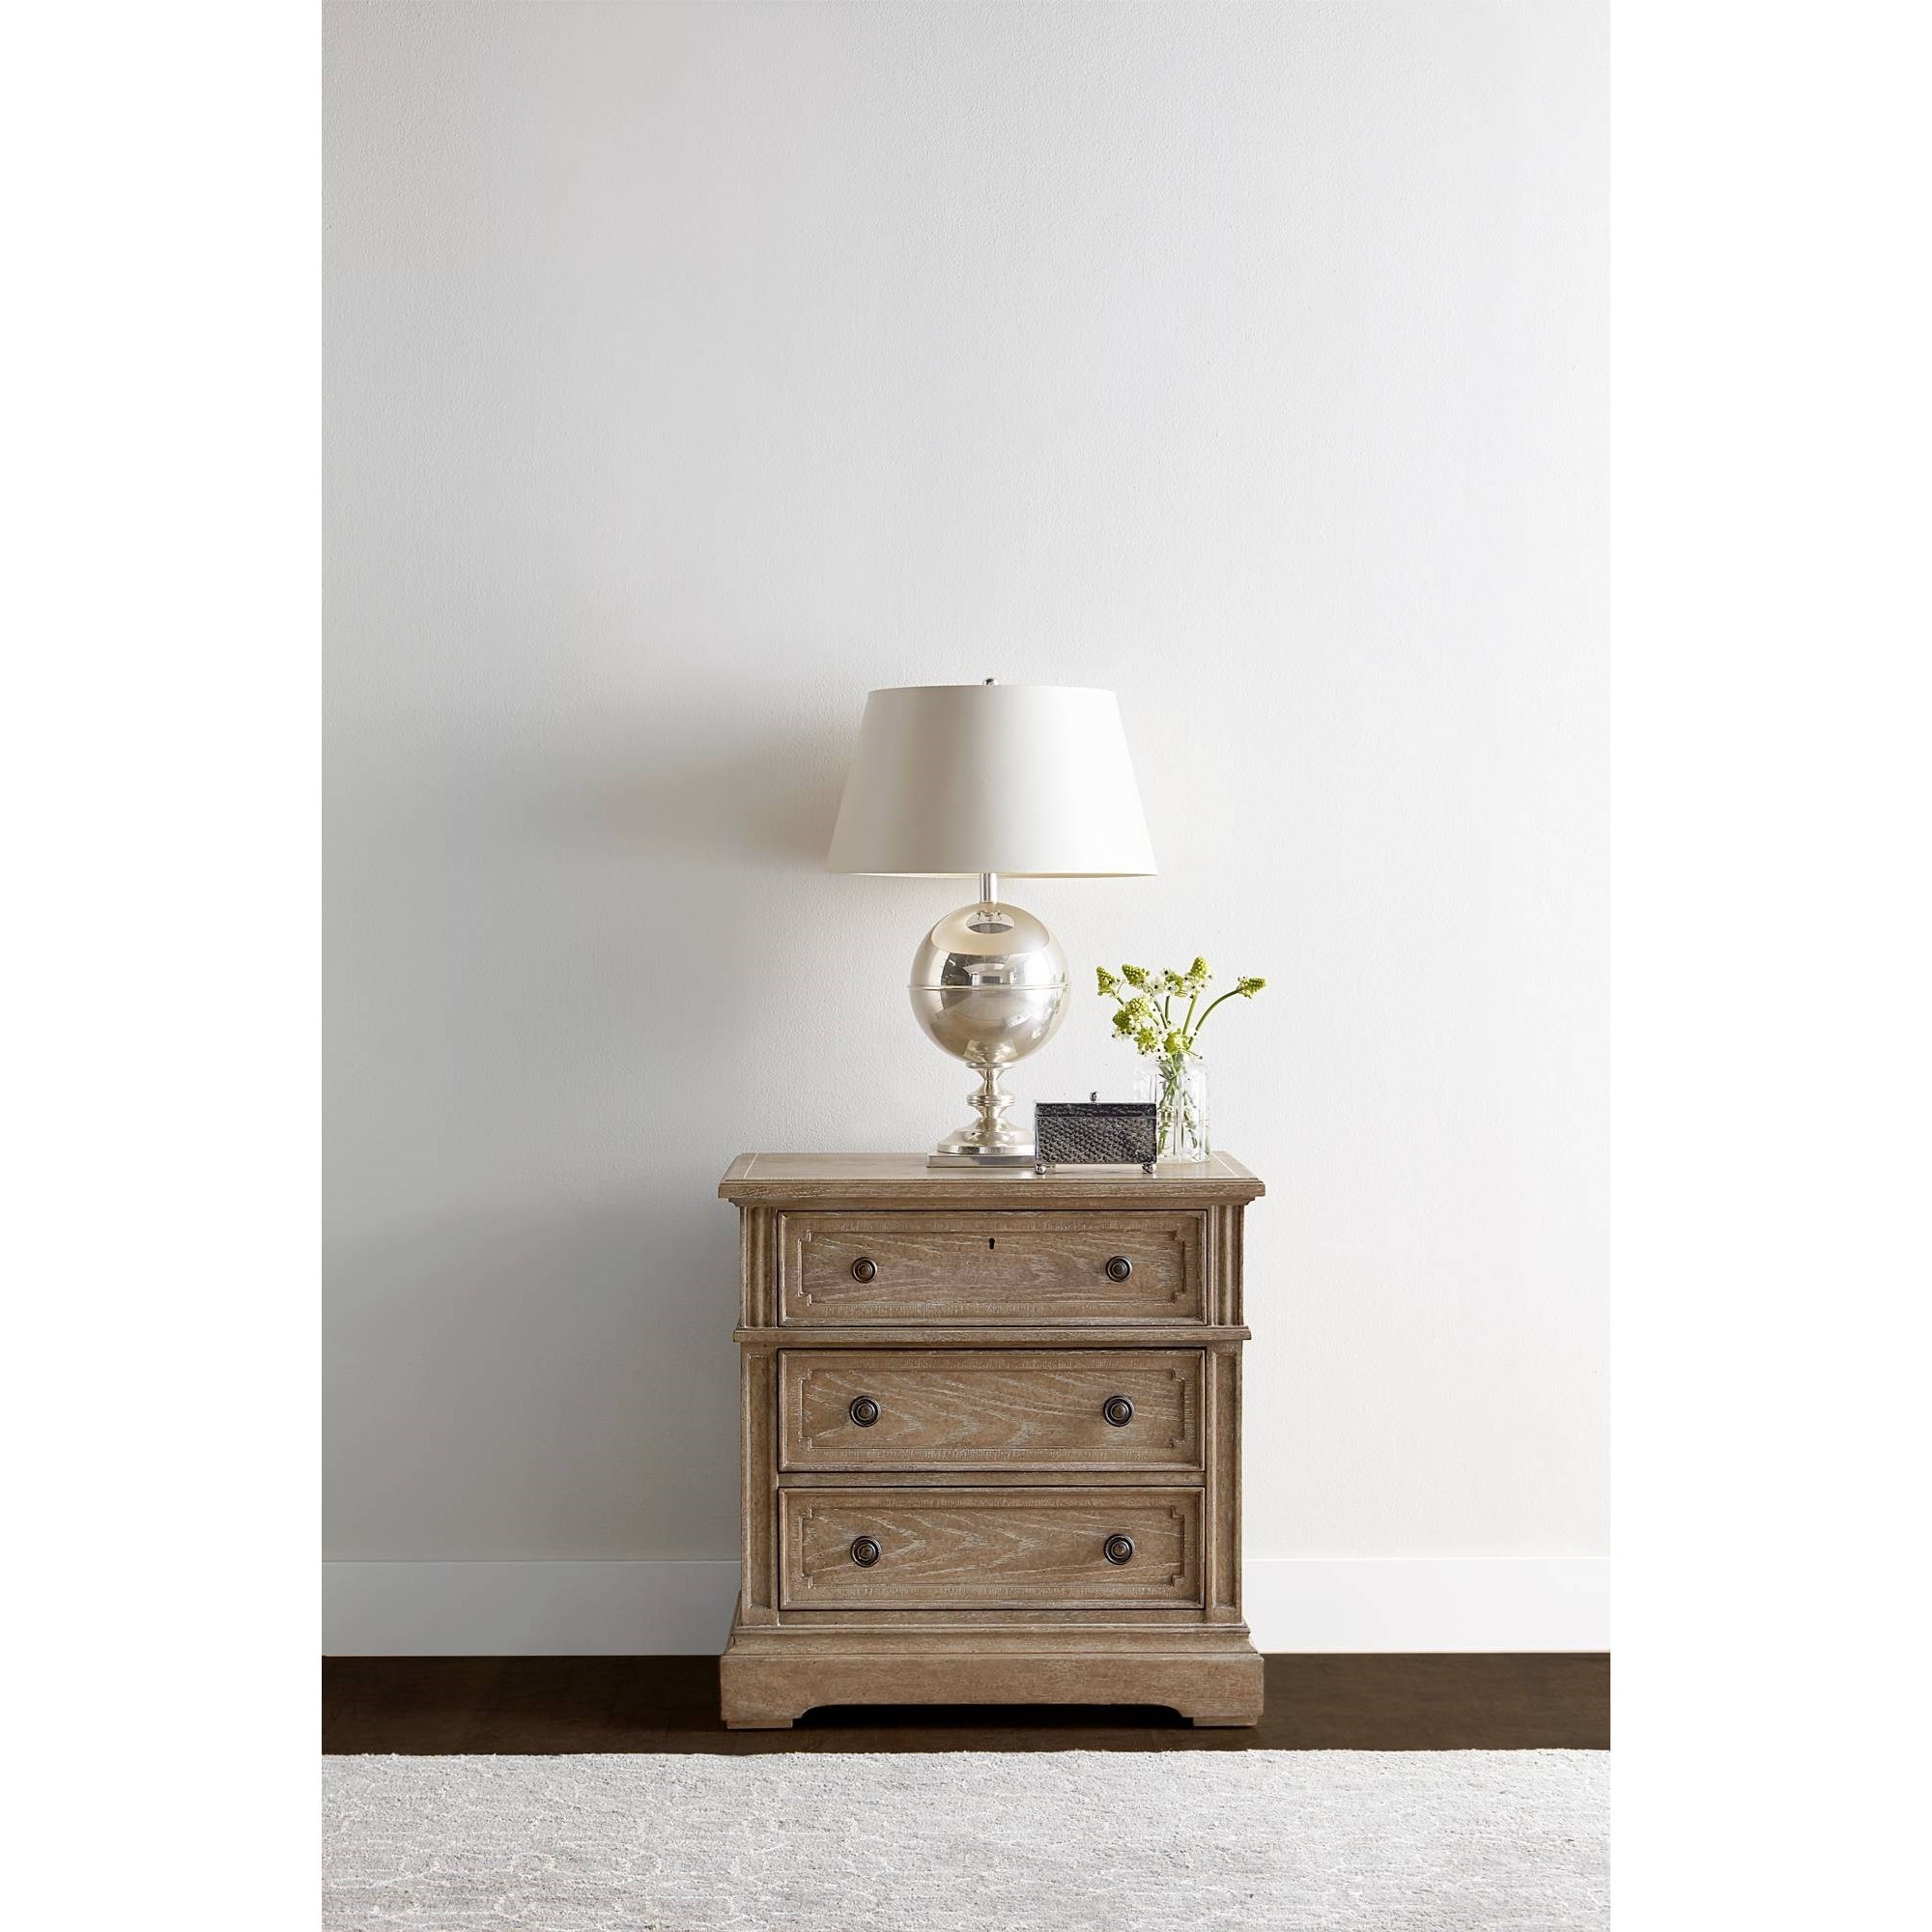 Stanley Furniture Wethersfield Estate 518 13 80 Nightstand With 3 Soft Close Drawers Becker